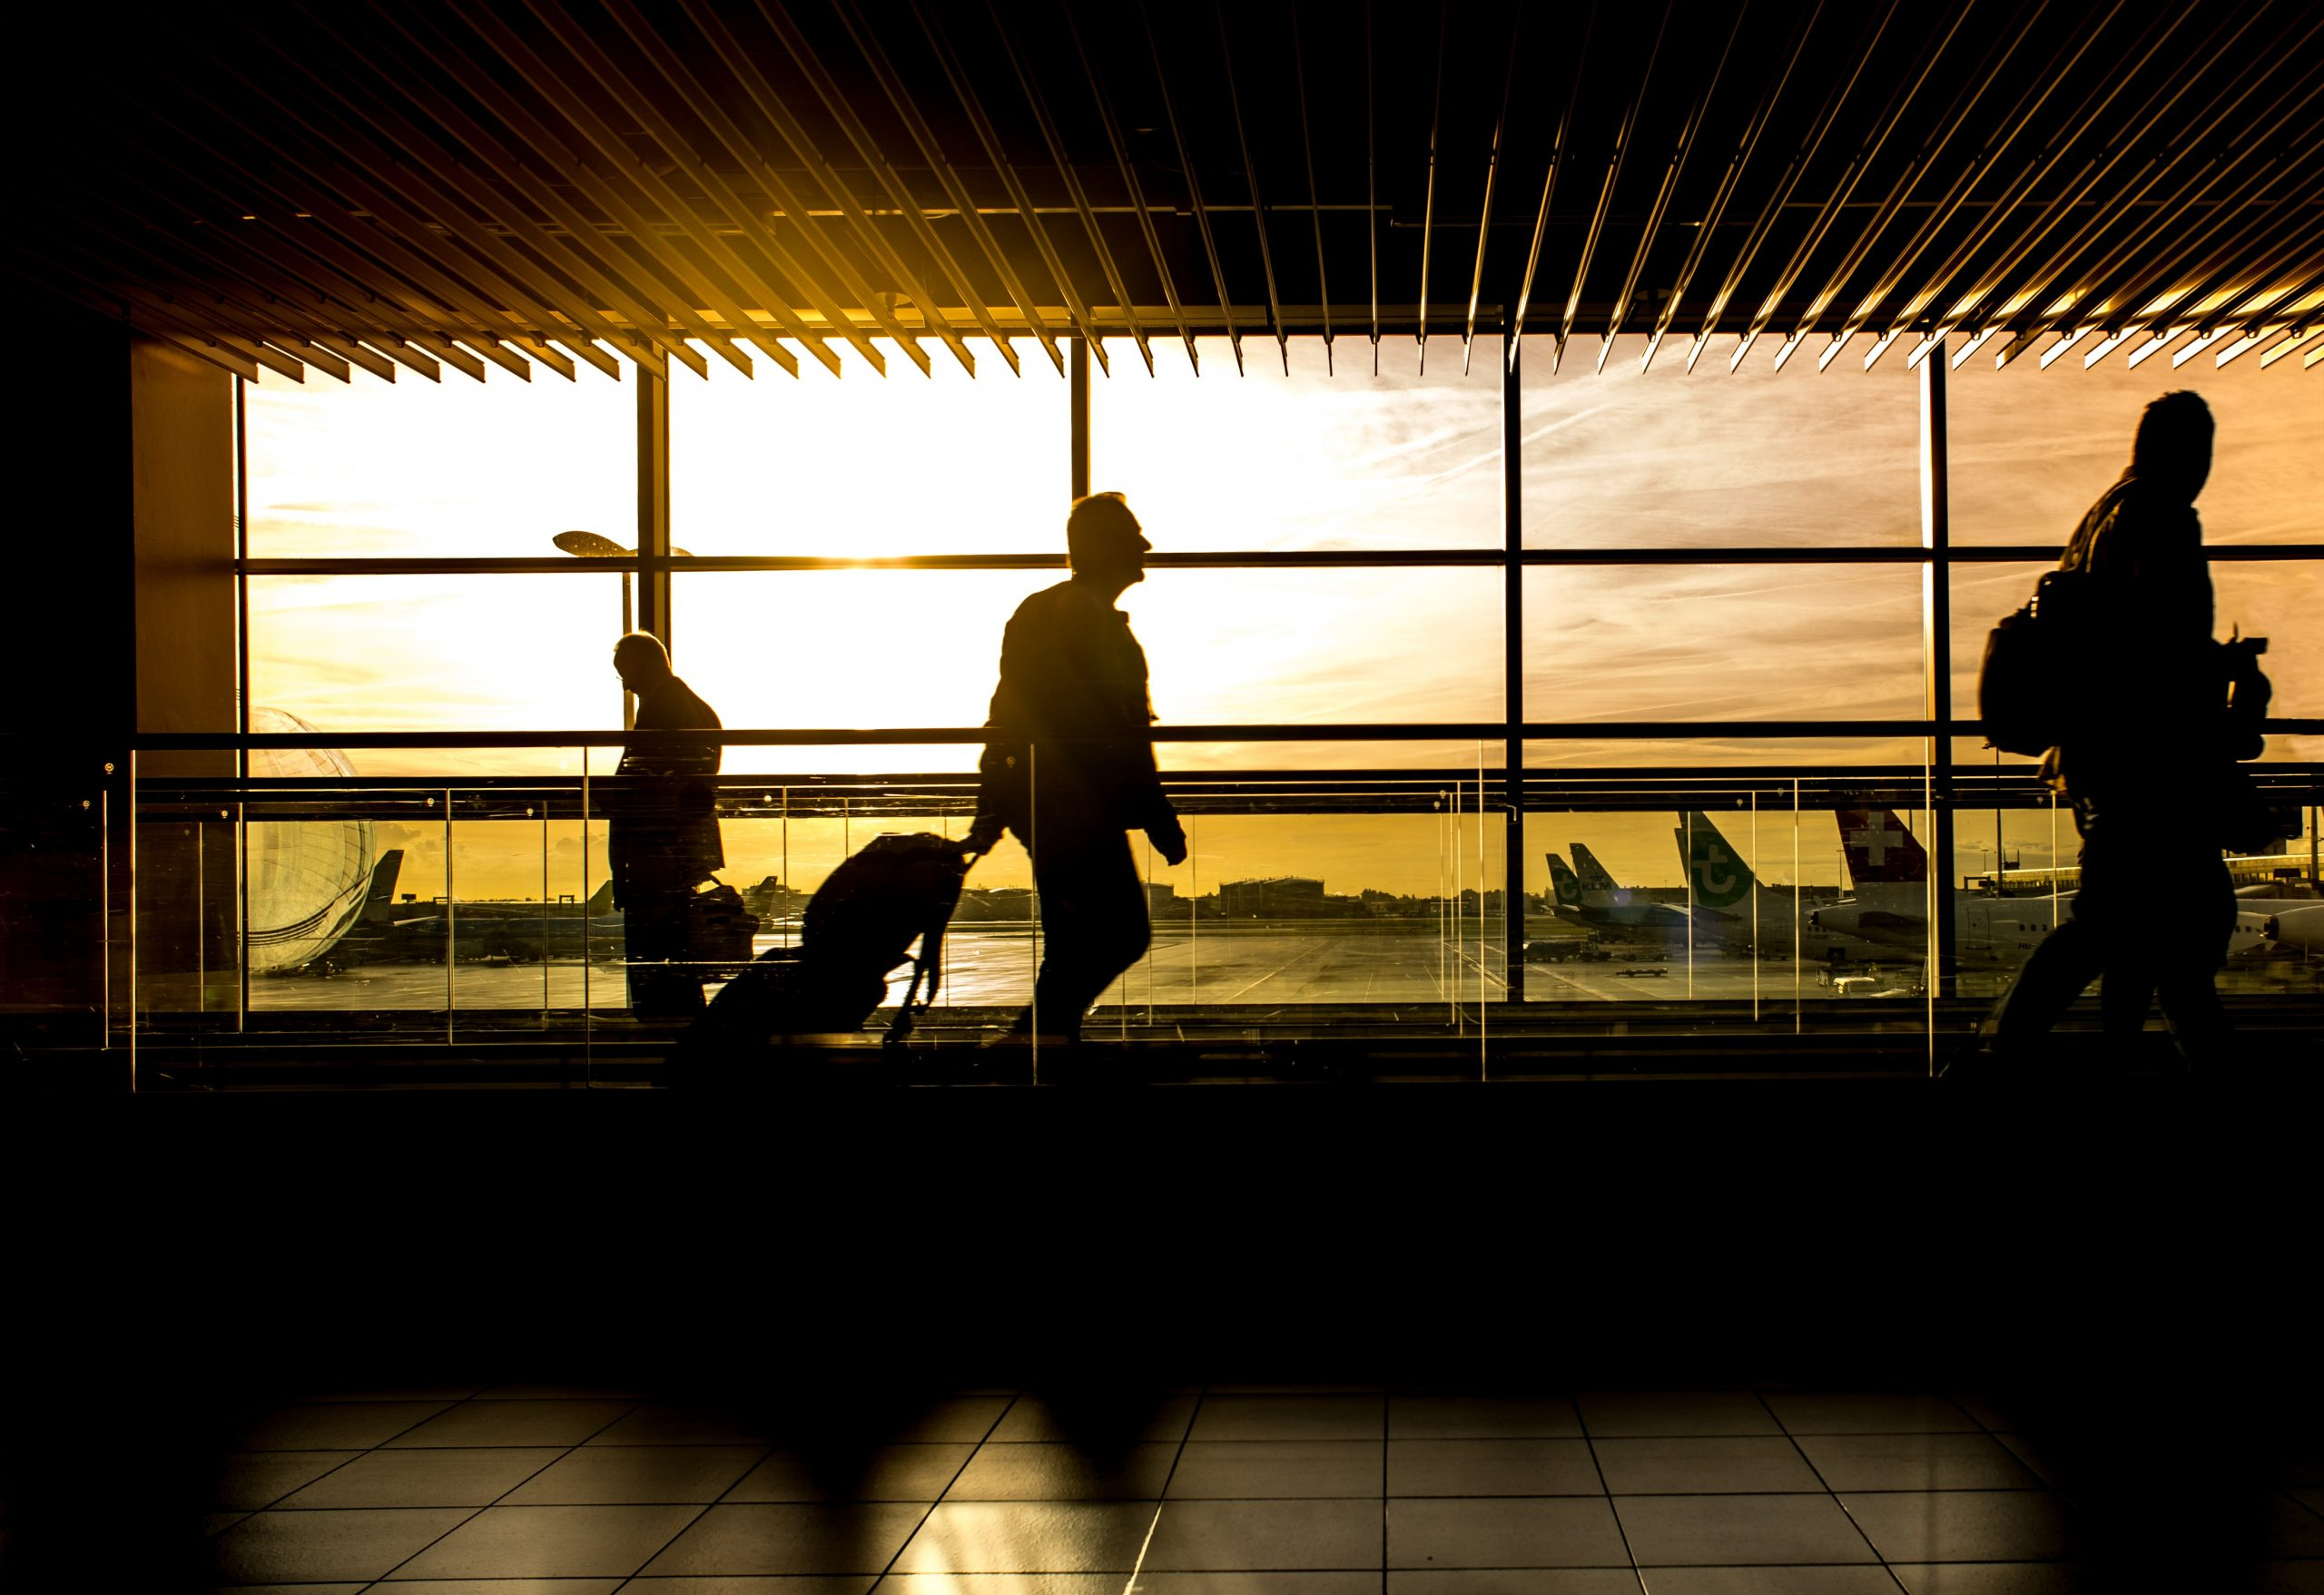 silhouettes of passengers walking through airport